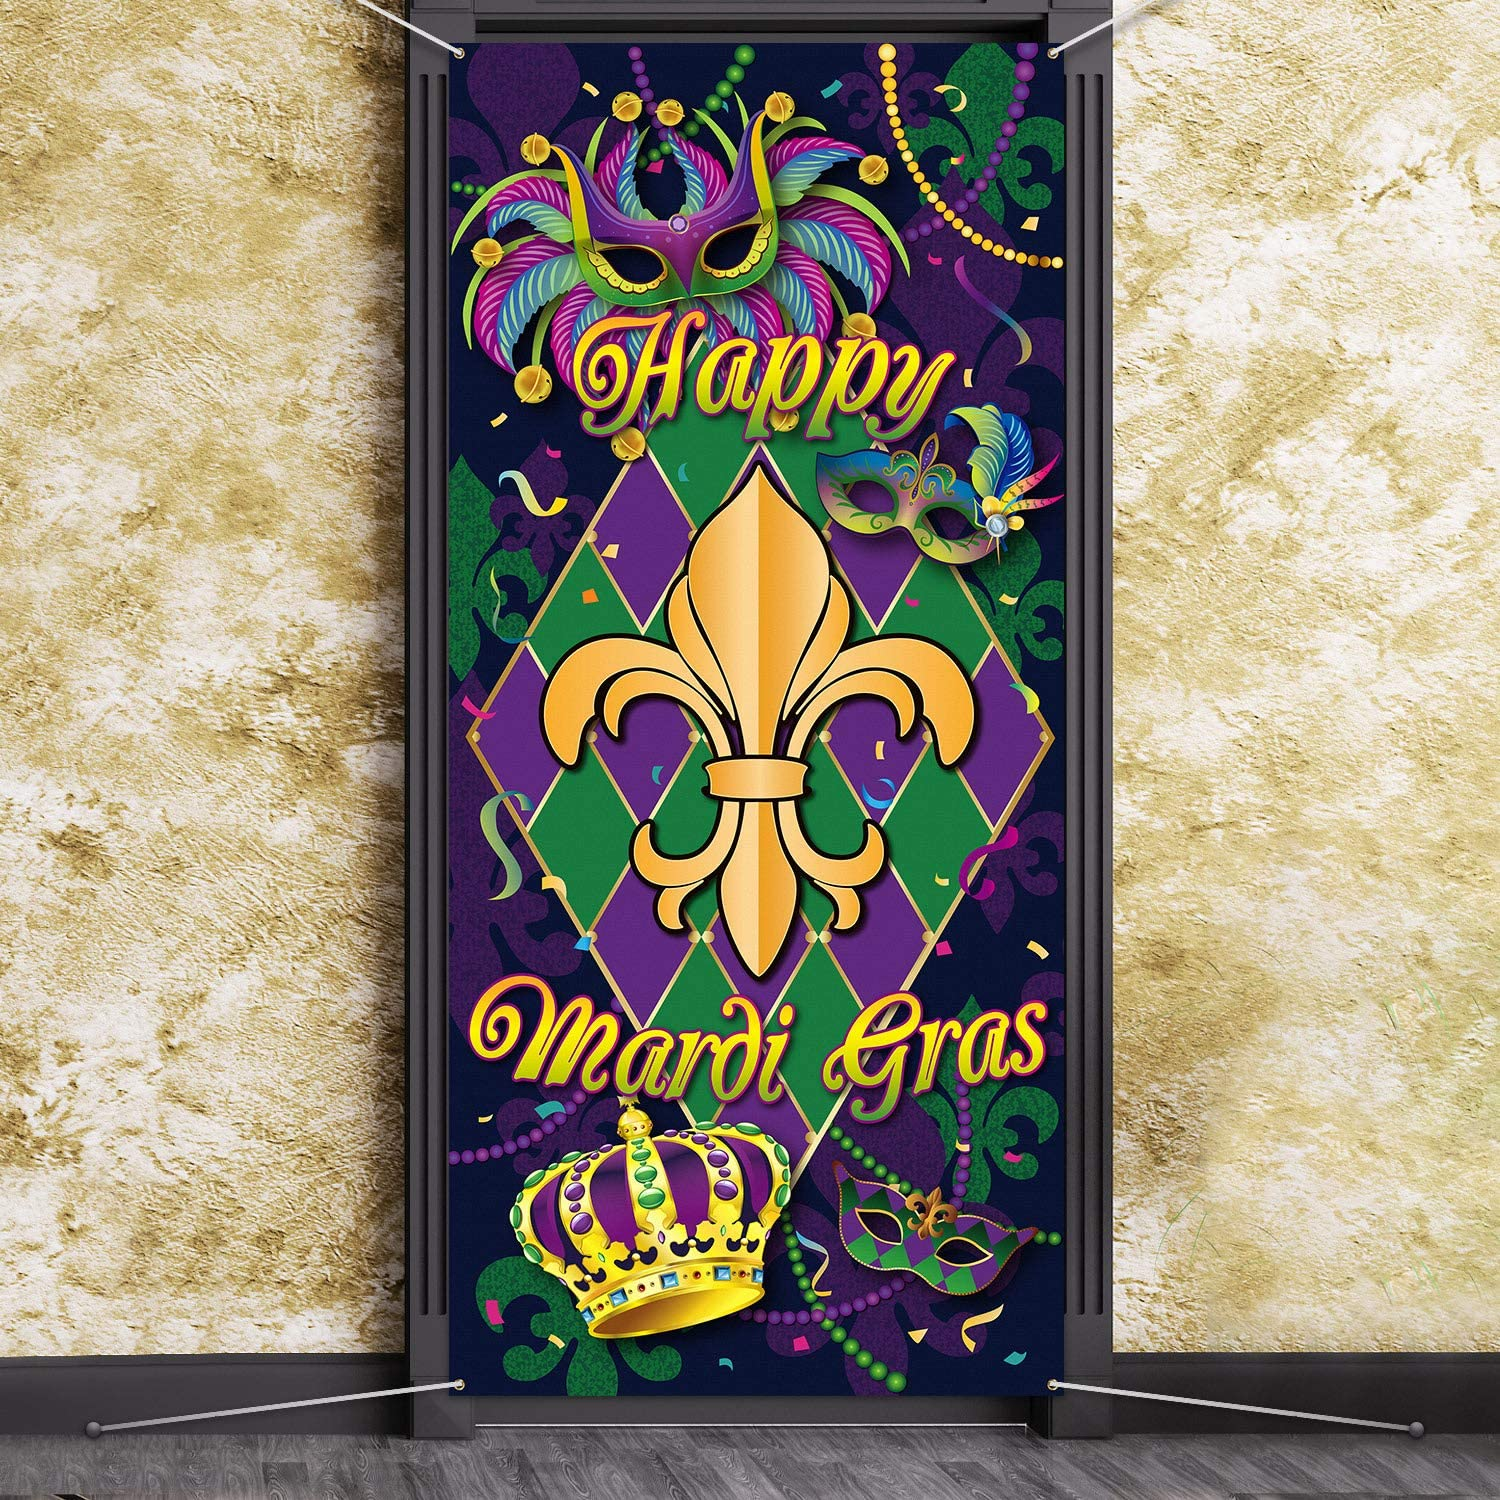 Mardi Gras Carnival Door Cover, Large Fabric Happy Mardi Gras Sign Party Door Cover Mardi Gras Party Decorations Backdrop Banner for Mardi Gras Party Favors, 78.7 x 35.4 Inch